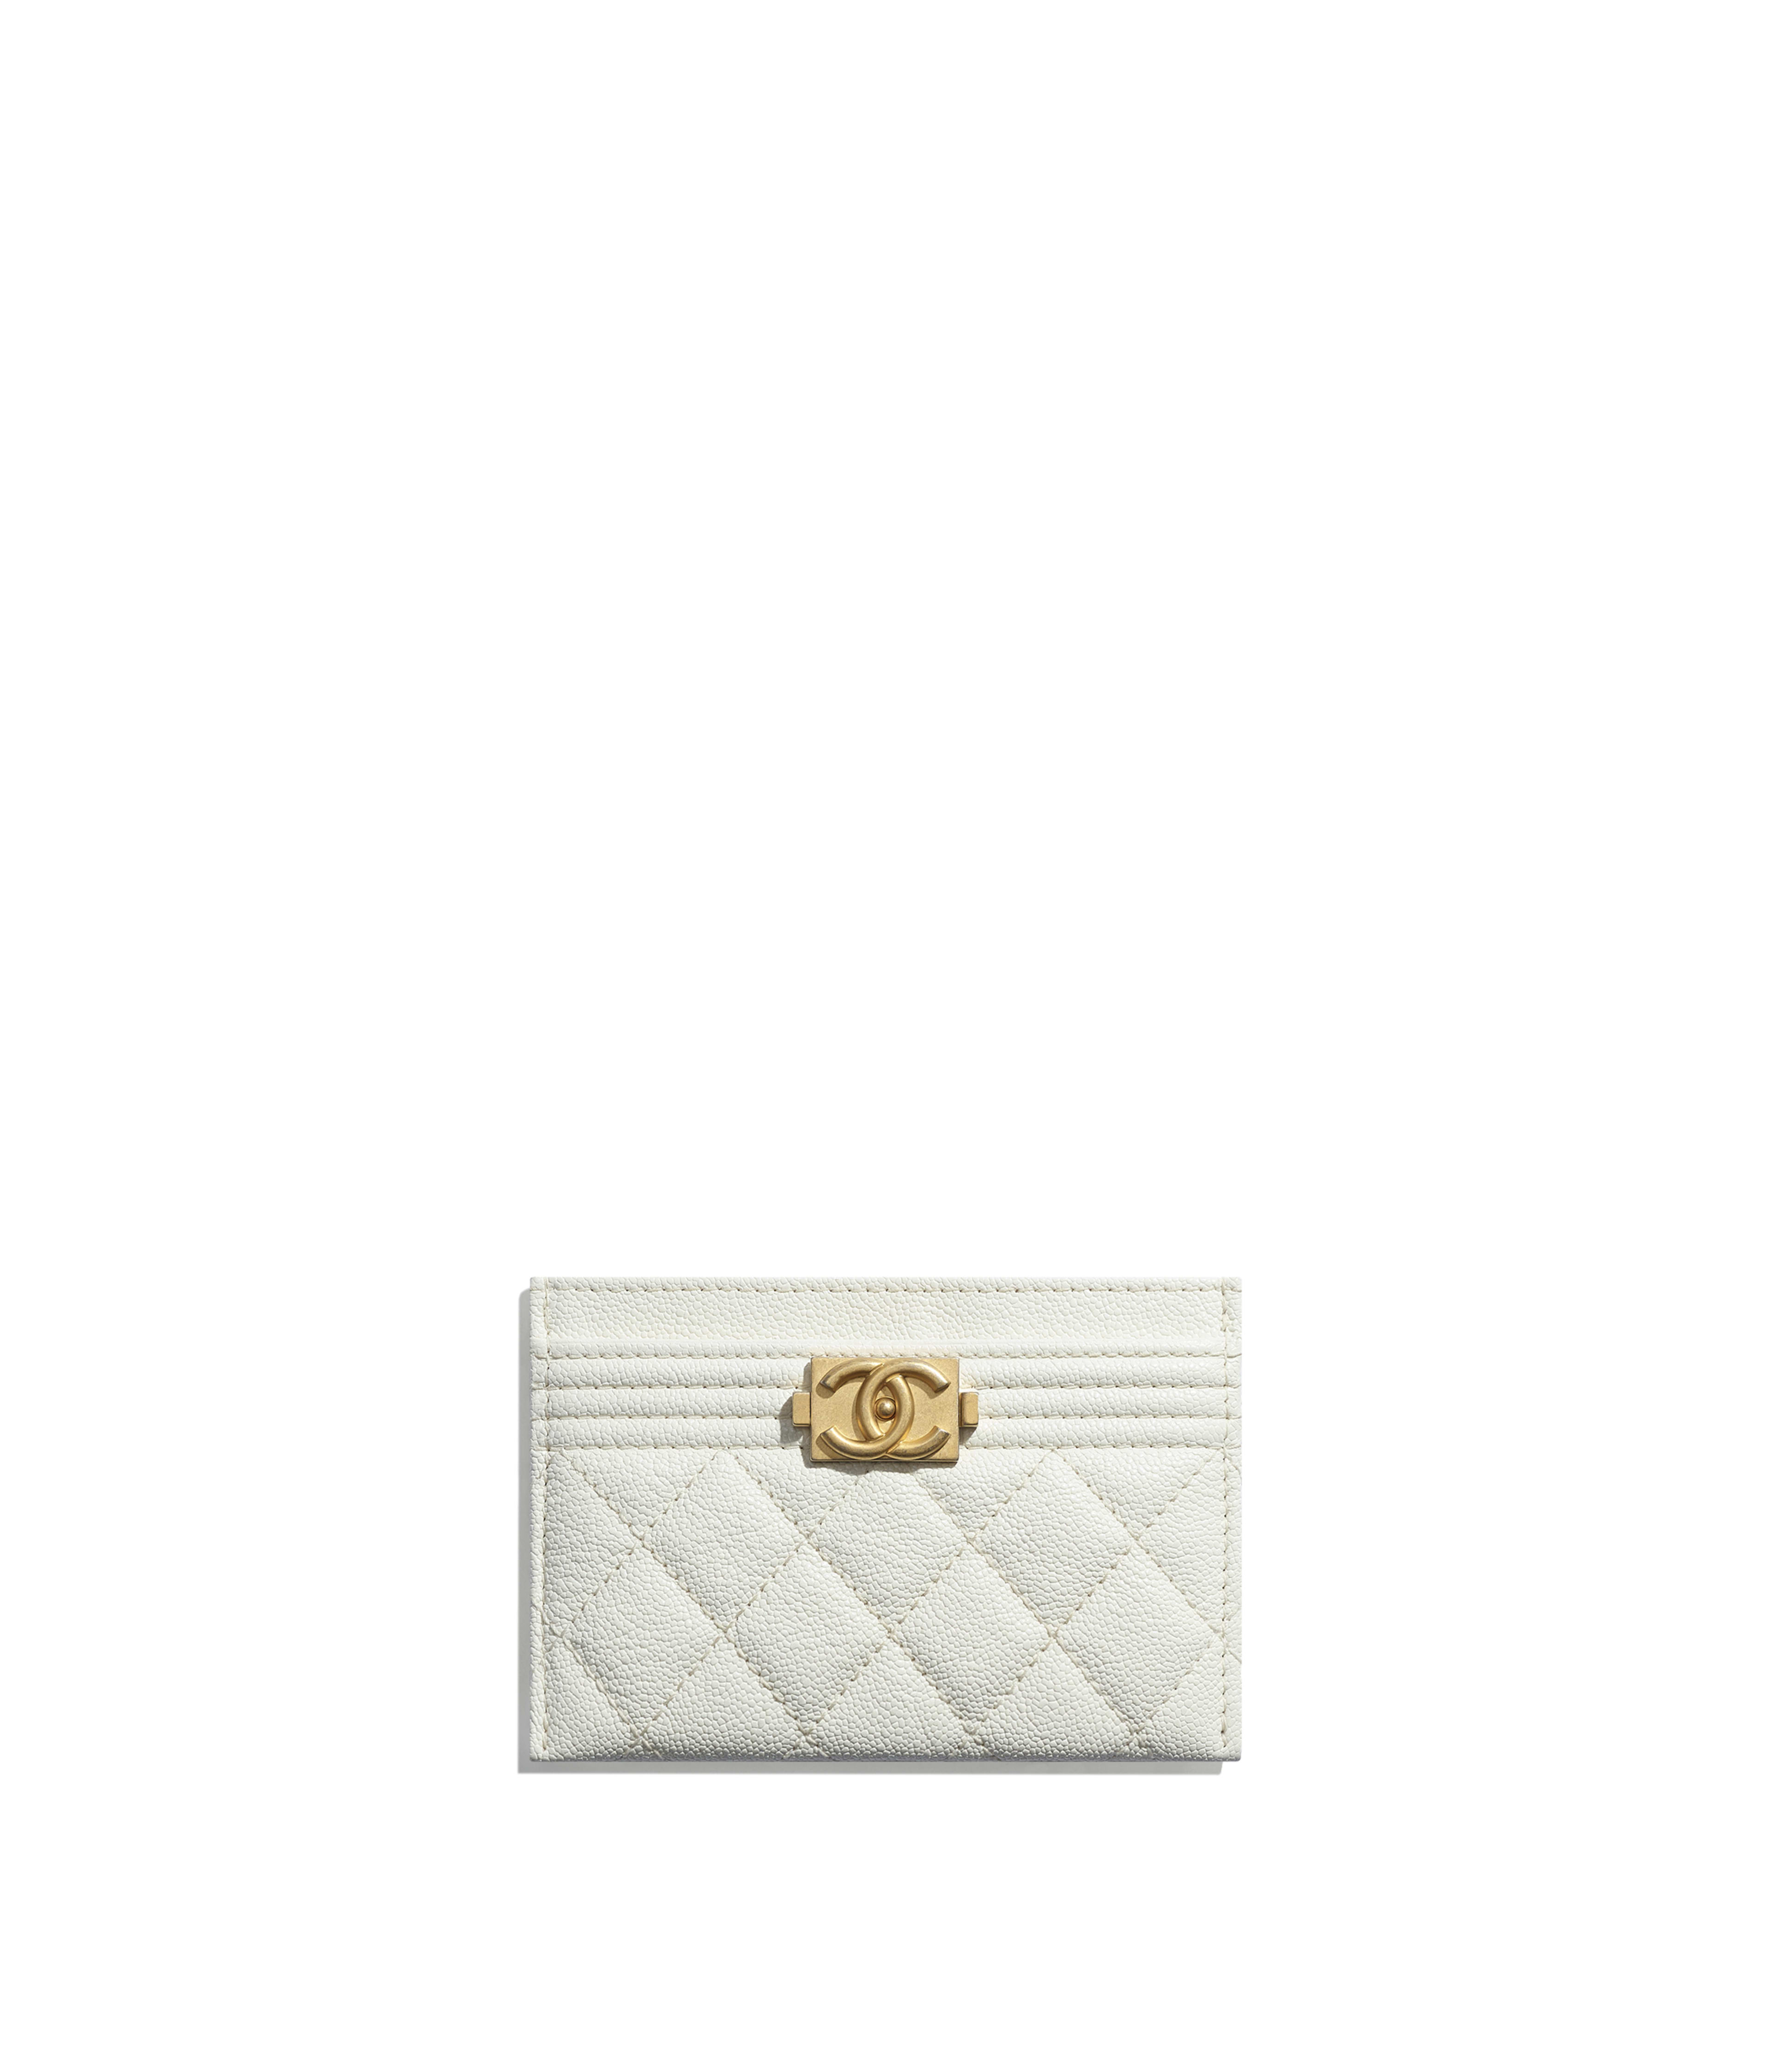 ee634e8c6a35 BOY CHANEL Card Holder Grained Calfskin & Gold-Tone Metal, White Ref.  A84431Y8362110601